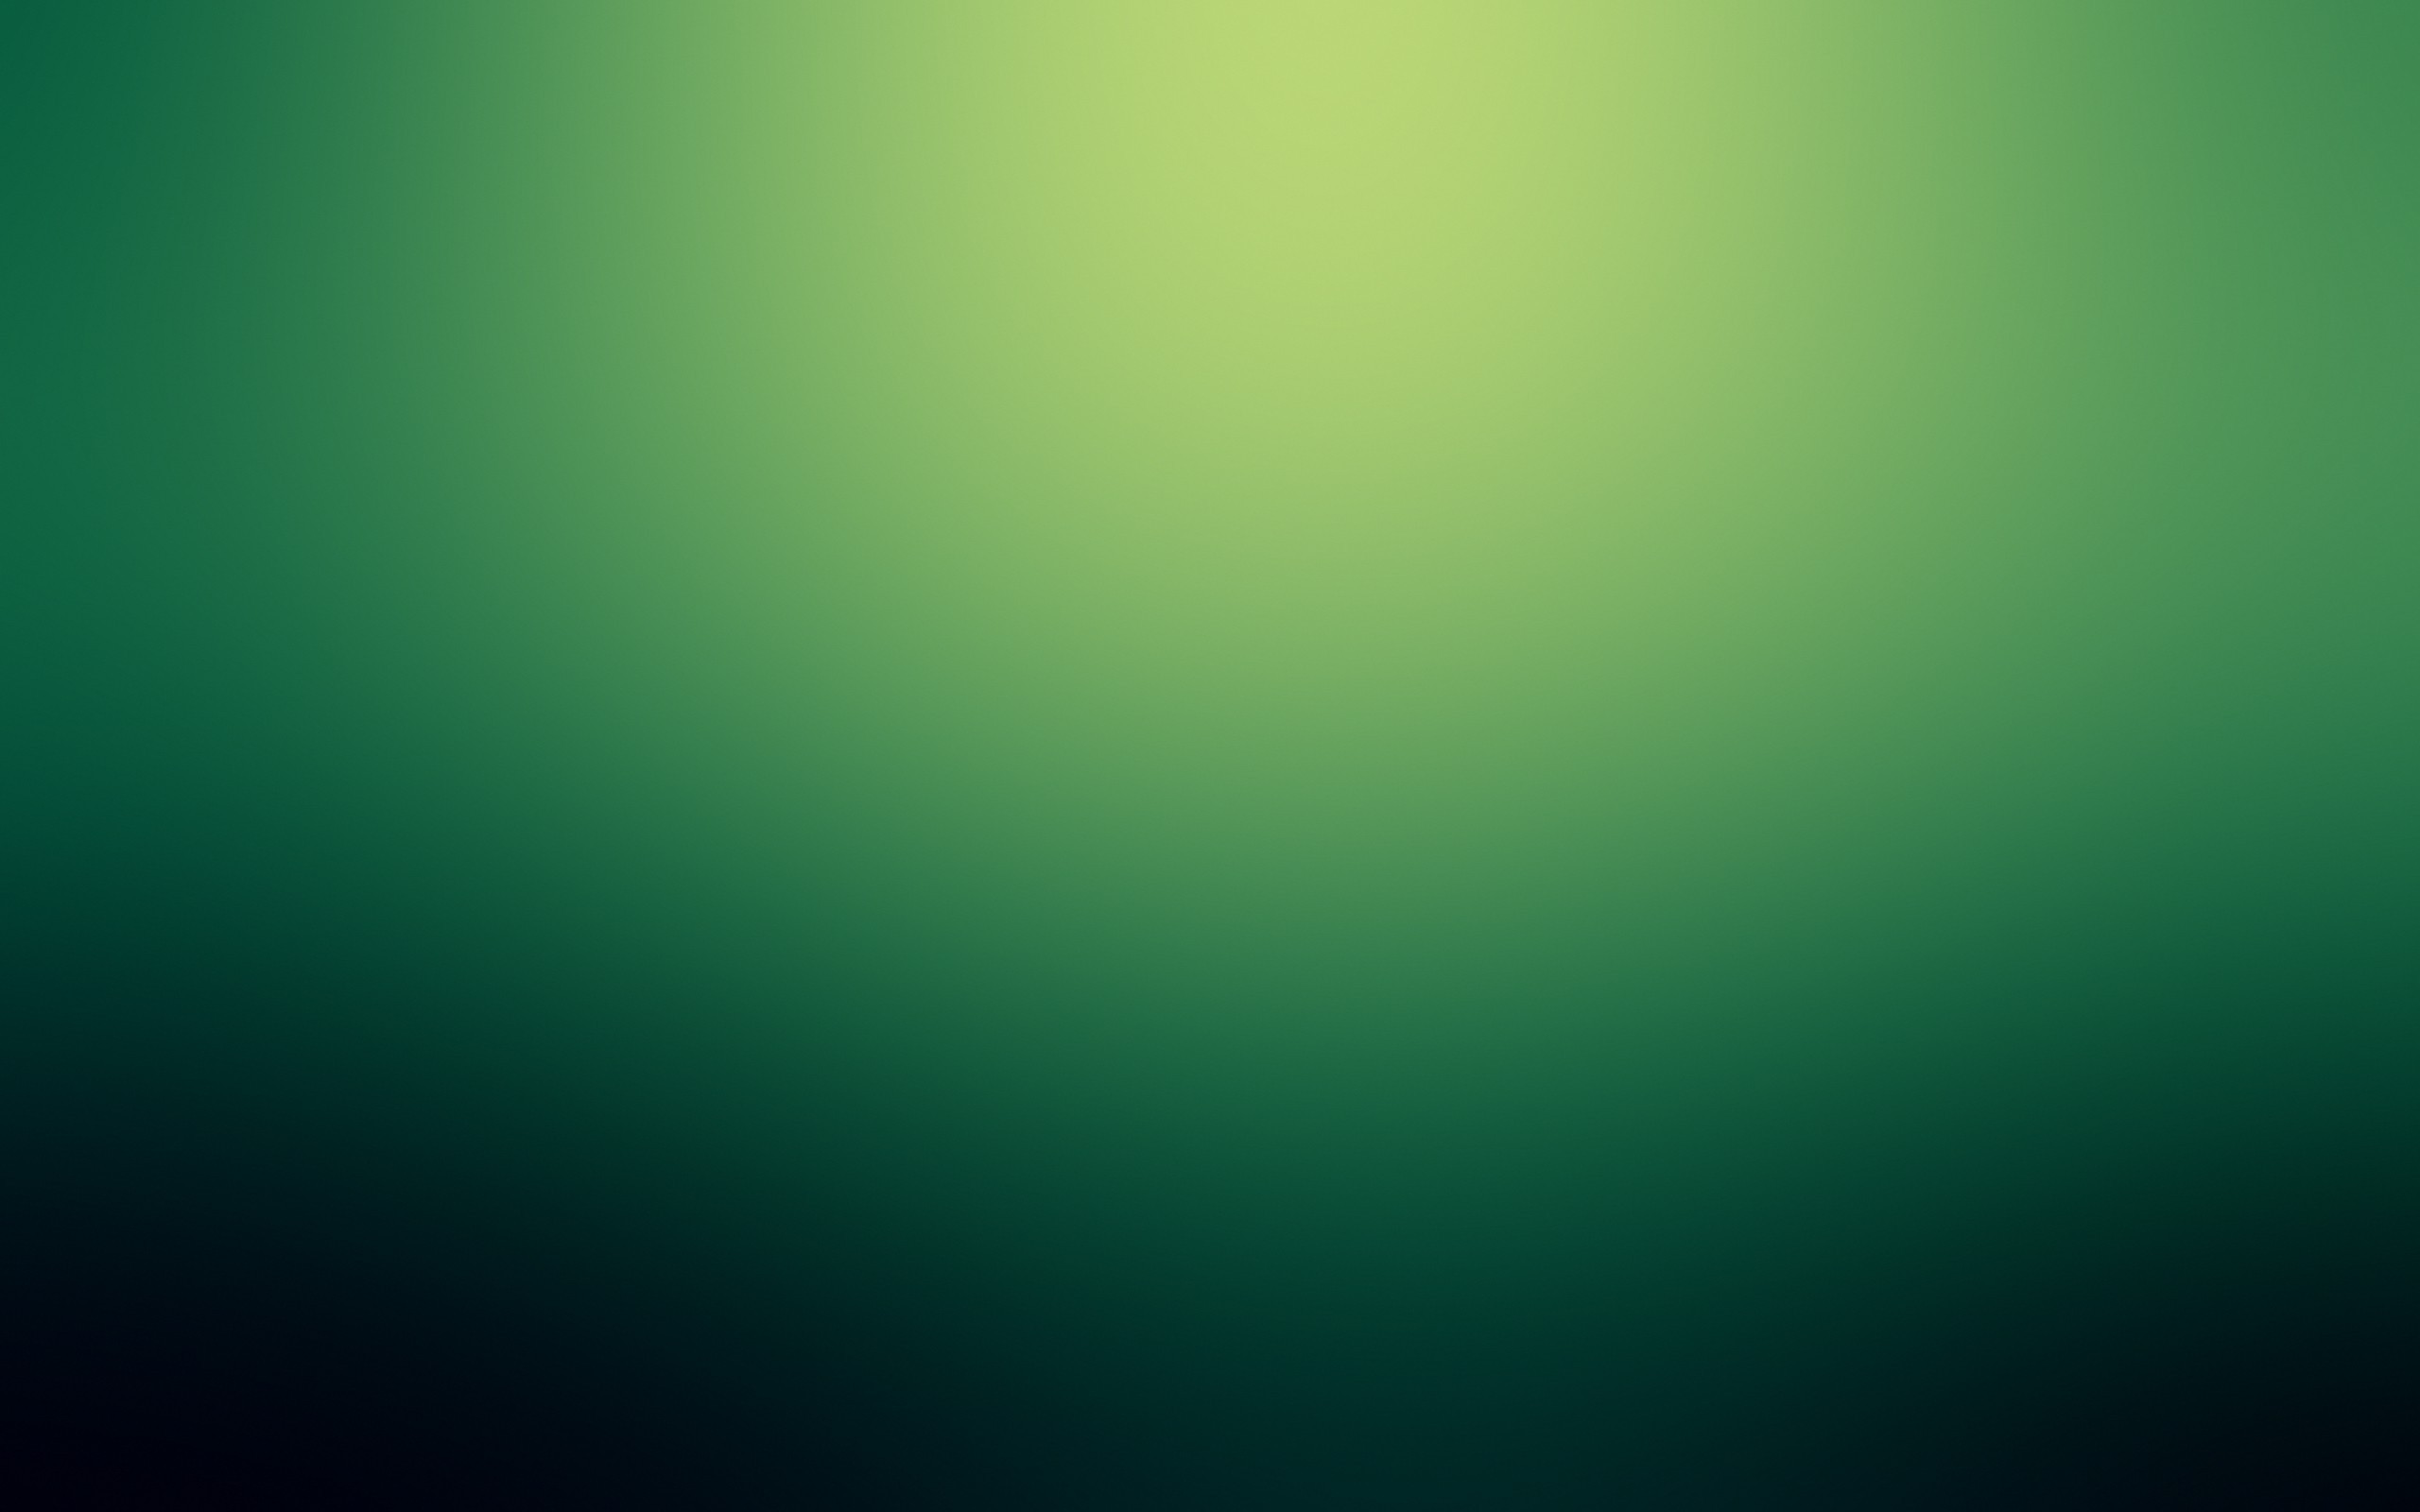 Green Gradient Wallpaper 2560x1600px